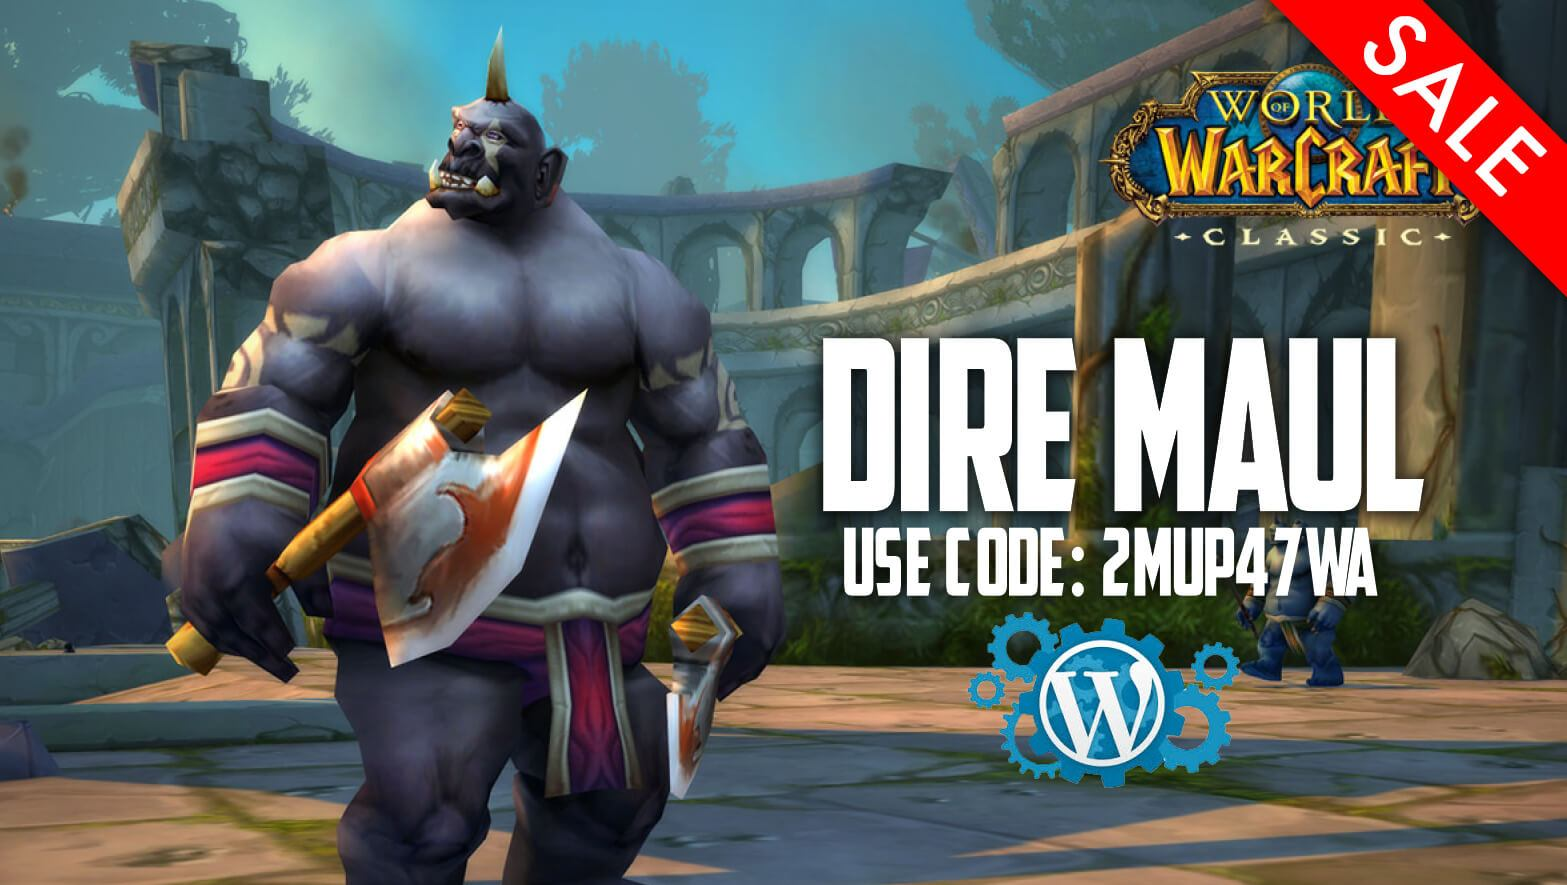 Dire Maul world of warcraft classic patch